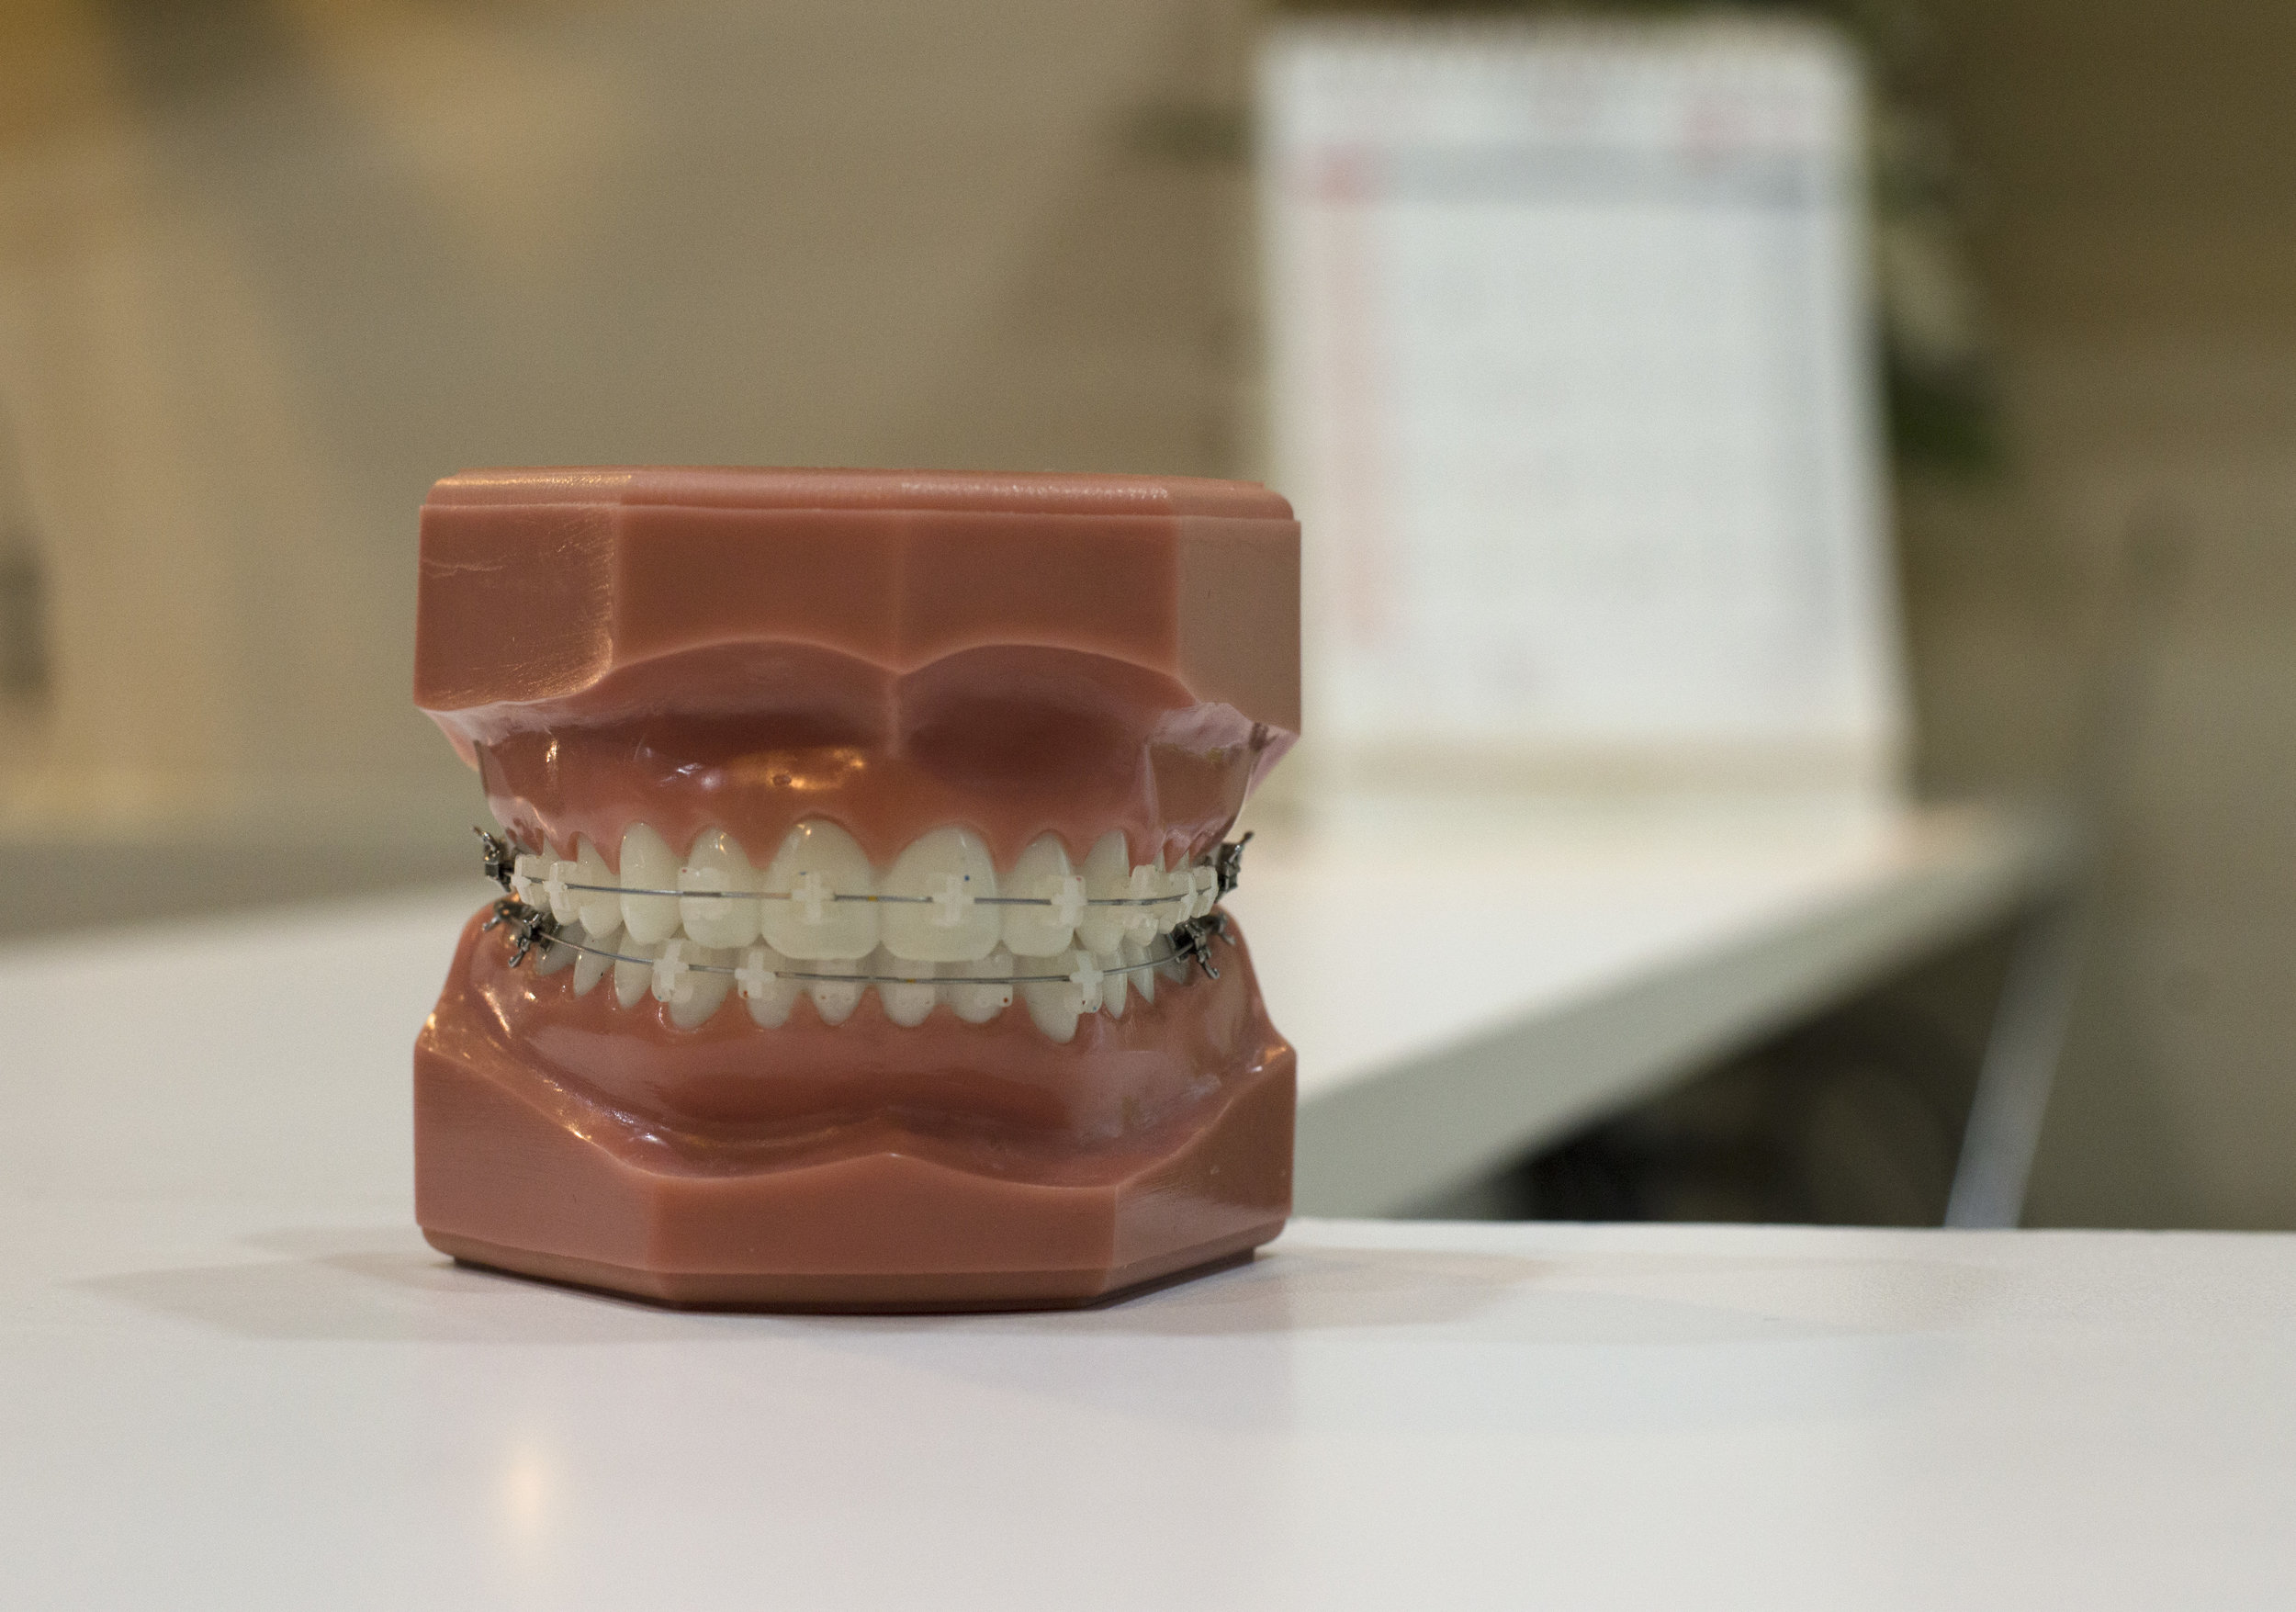 Braces from Orthodontist Dr. Mahaffey in Peachtree City, GA